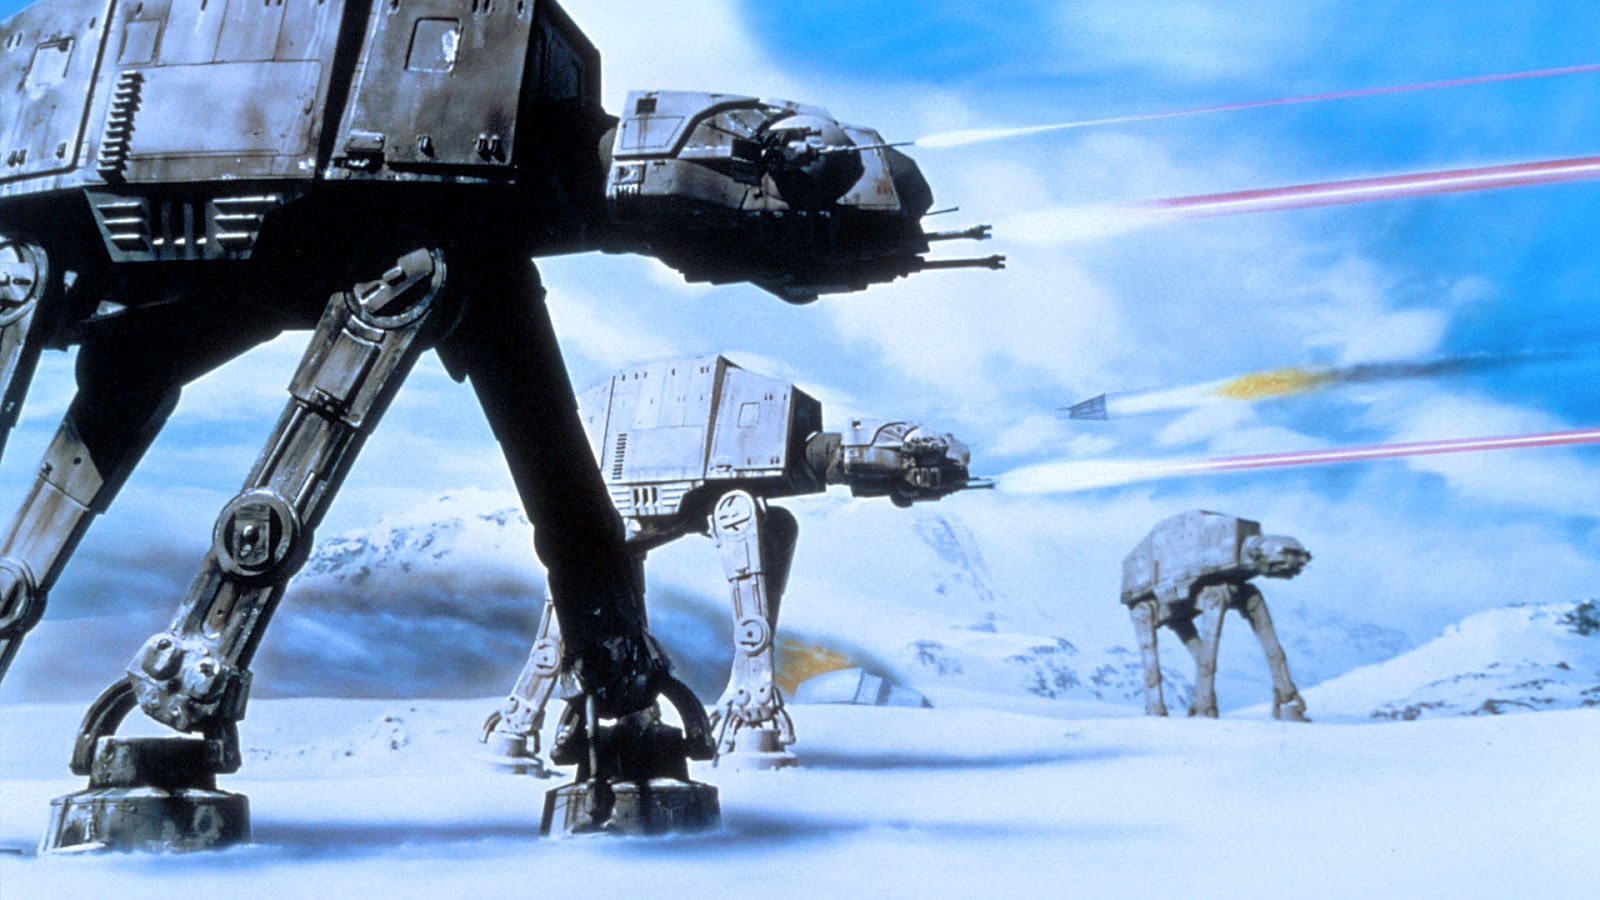 Star wars hd images hd wallpapers - Star wars wallpaper ...